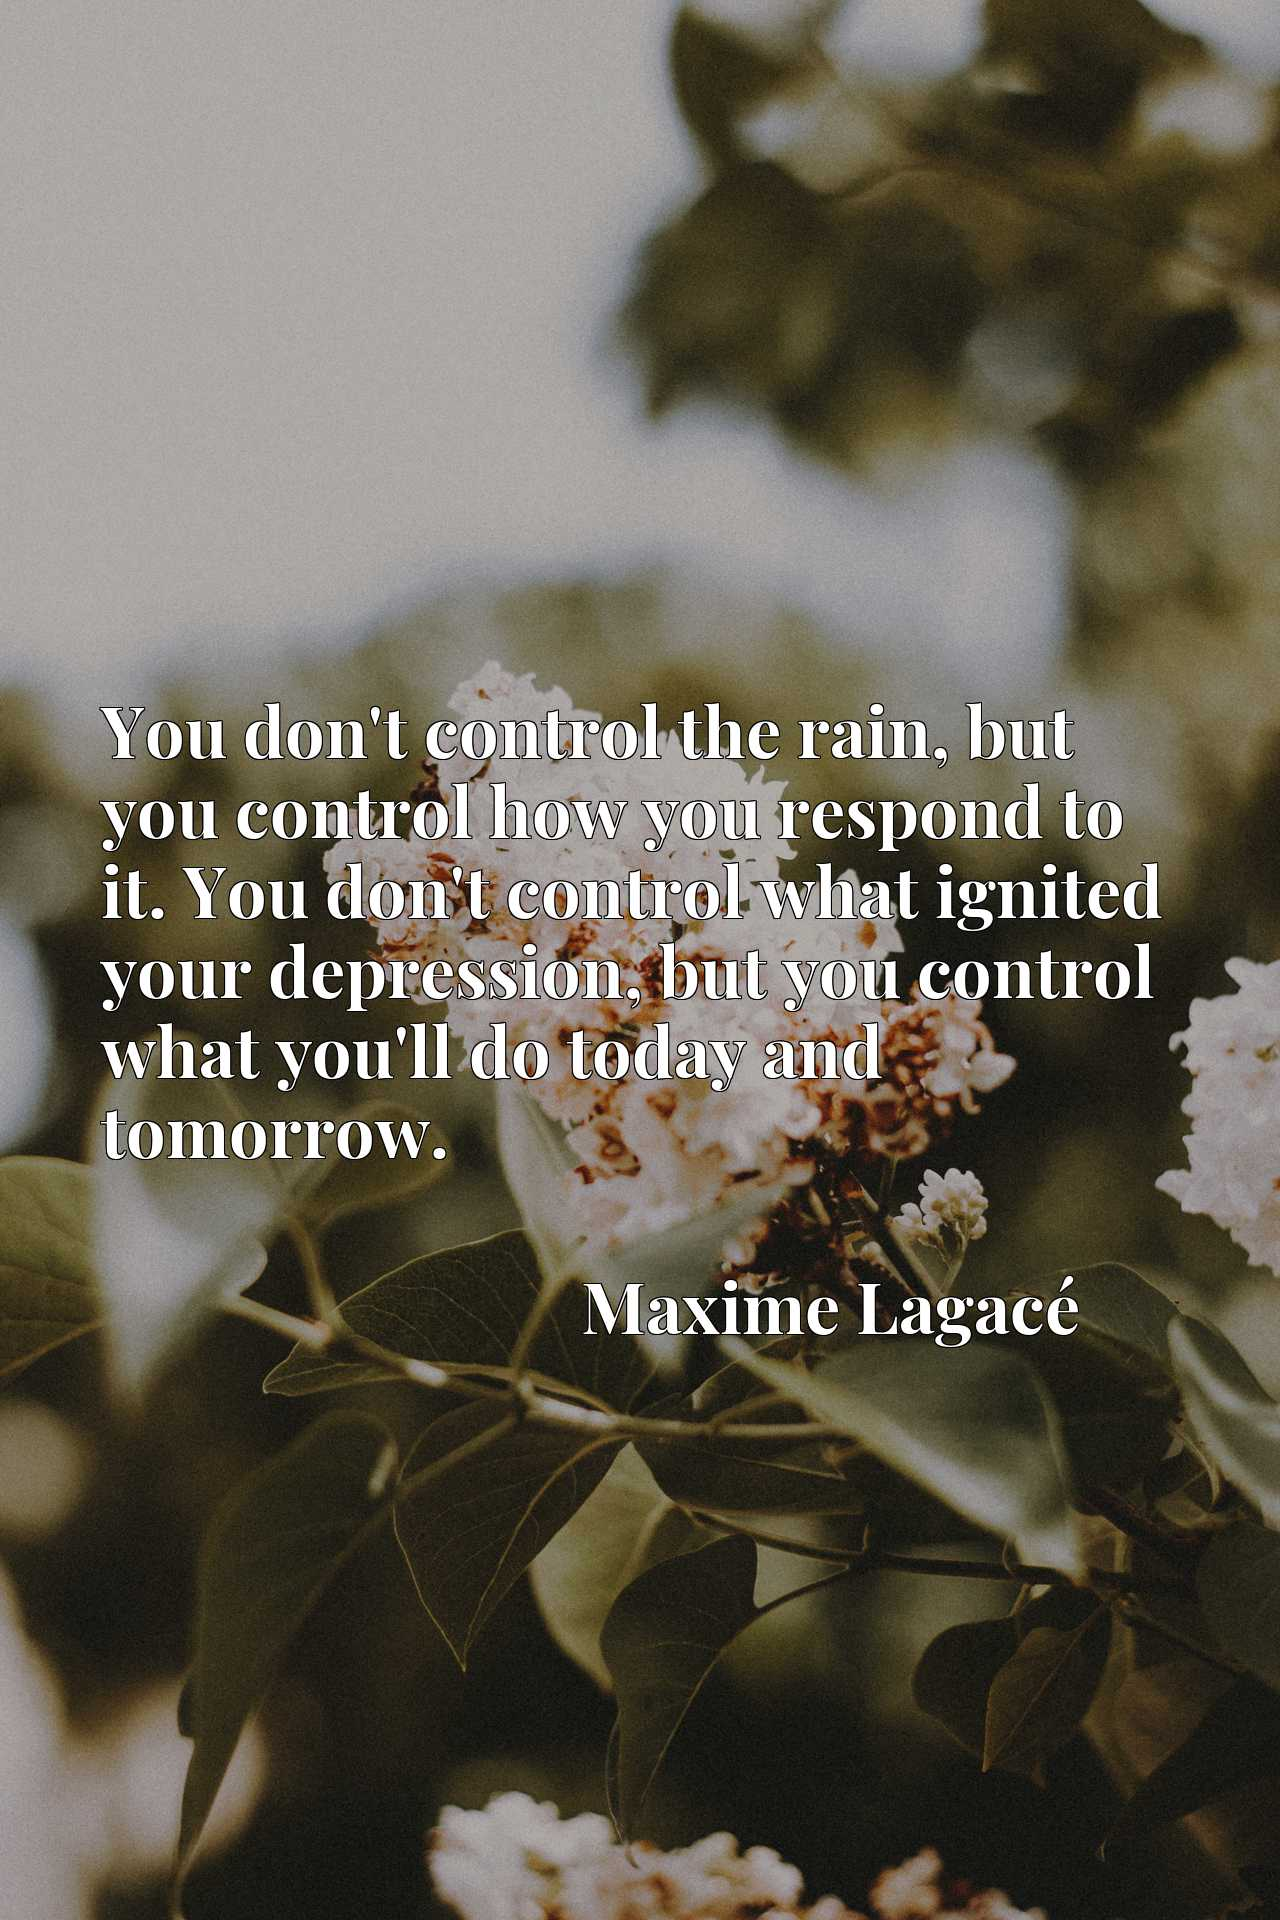 You don't control the rain, but you control how you respond to it. You don't control what ignited your depression, but you control what you'll do today and tomorrow.